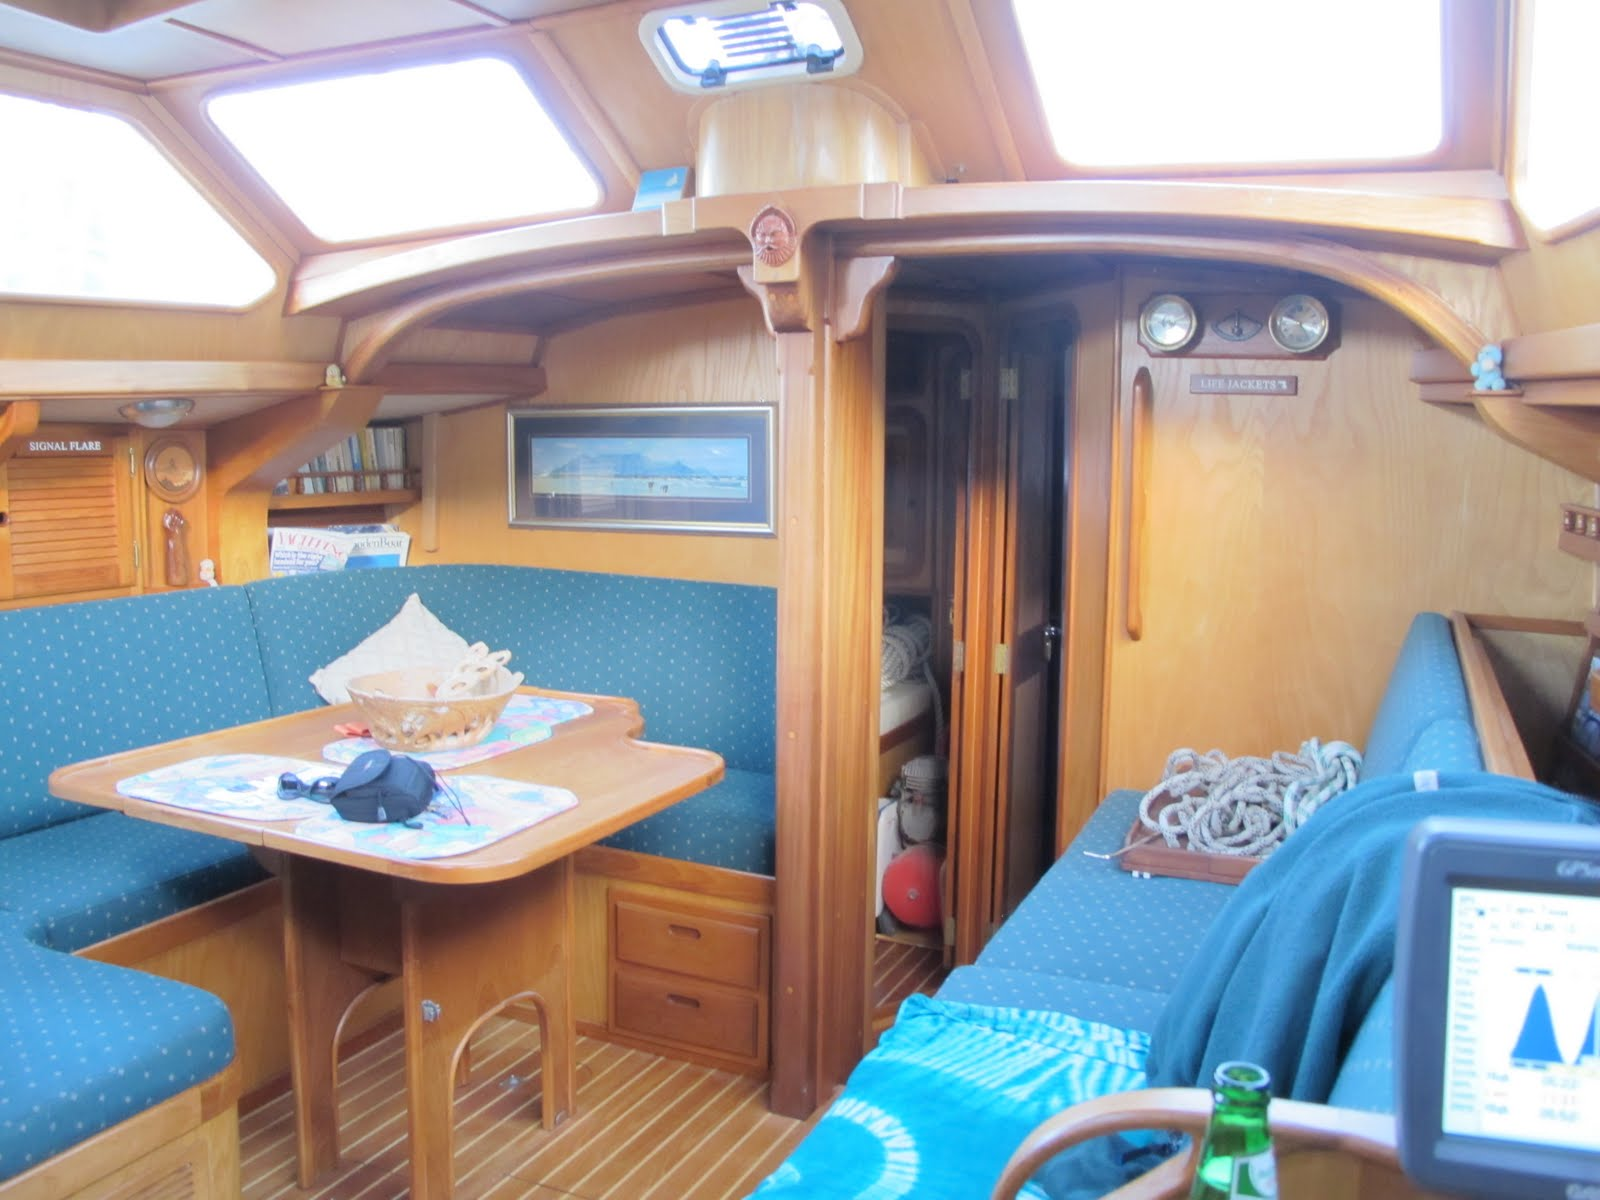 We have had at least two enquiries to yacht interior veneers and finishes this weekif its not for a slap of white paint and needle punch carpet you want ... & CKD Boats - Roy Mc Bride: Yacht interior mouldings and finishes